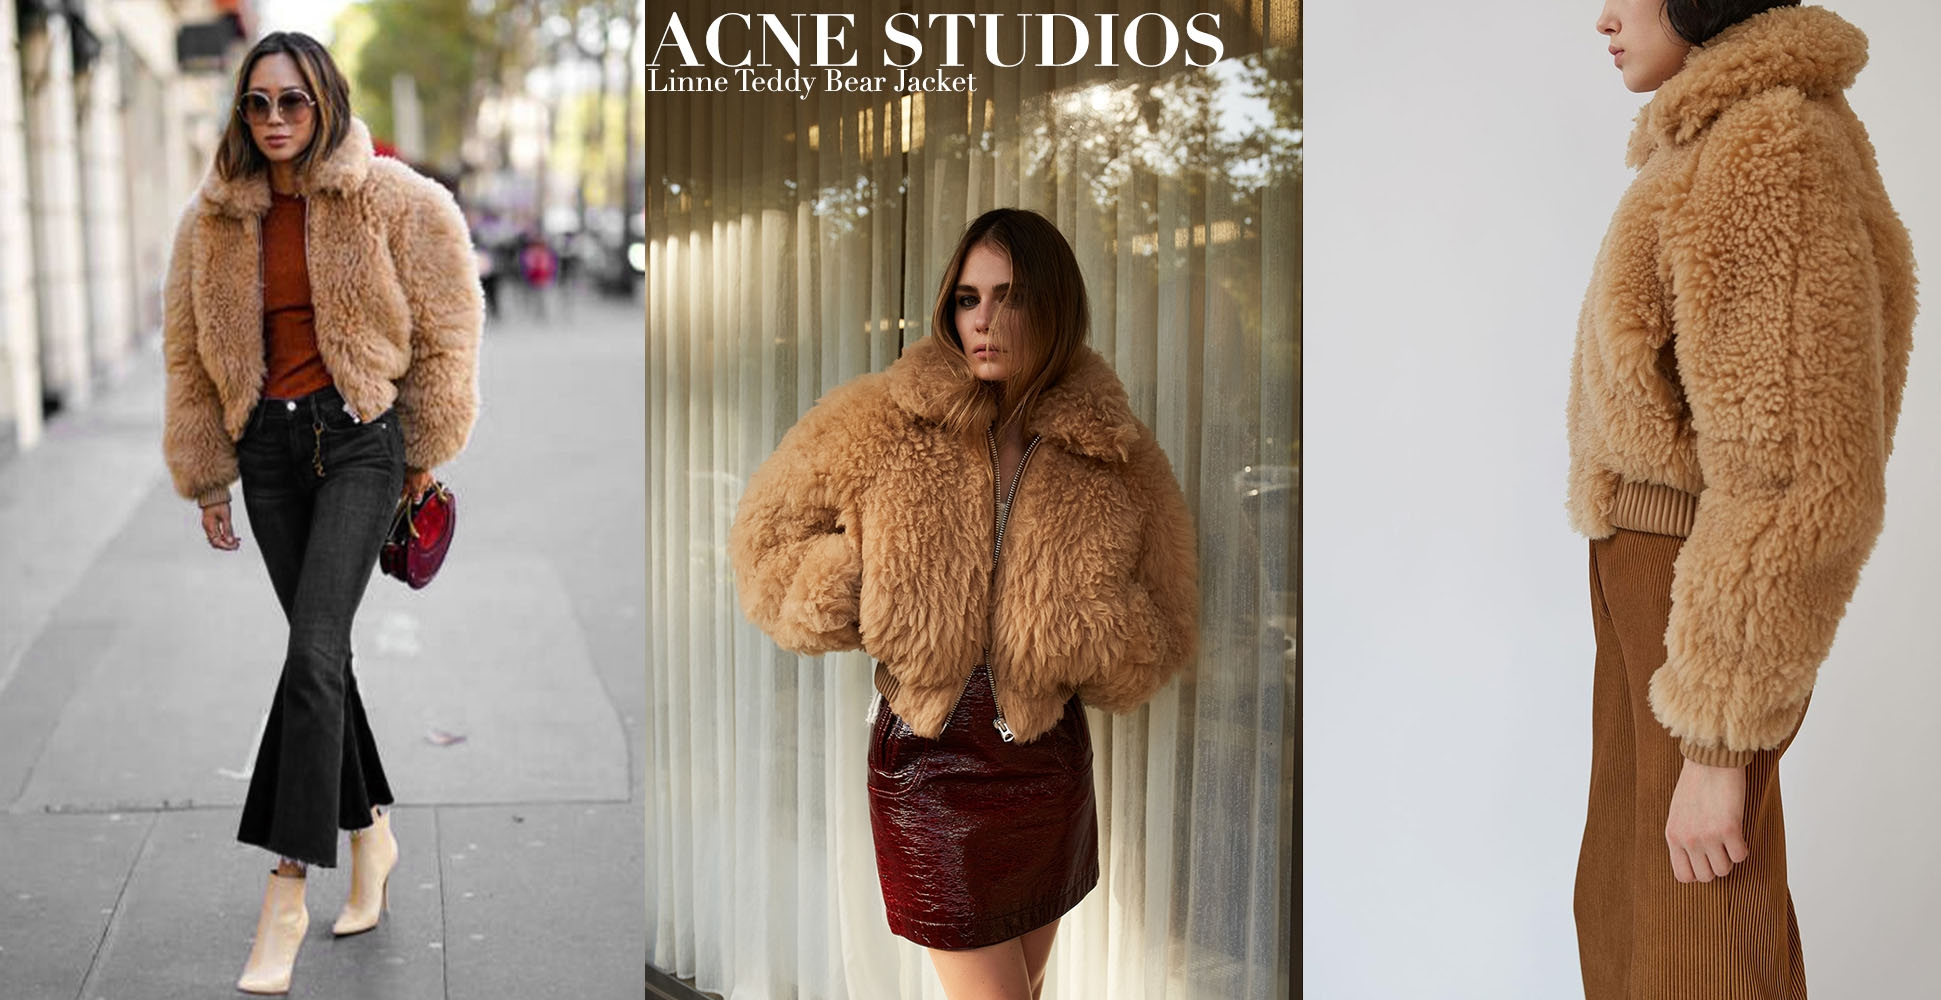 2e1884d5d0d ACNE STUDIOS LINNE TEDDY BEAR Camel brown shearling jacket Retail price   3414 Size 36